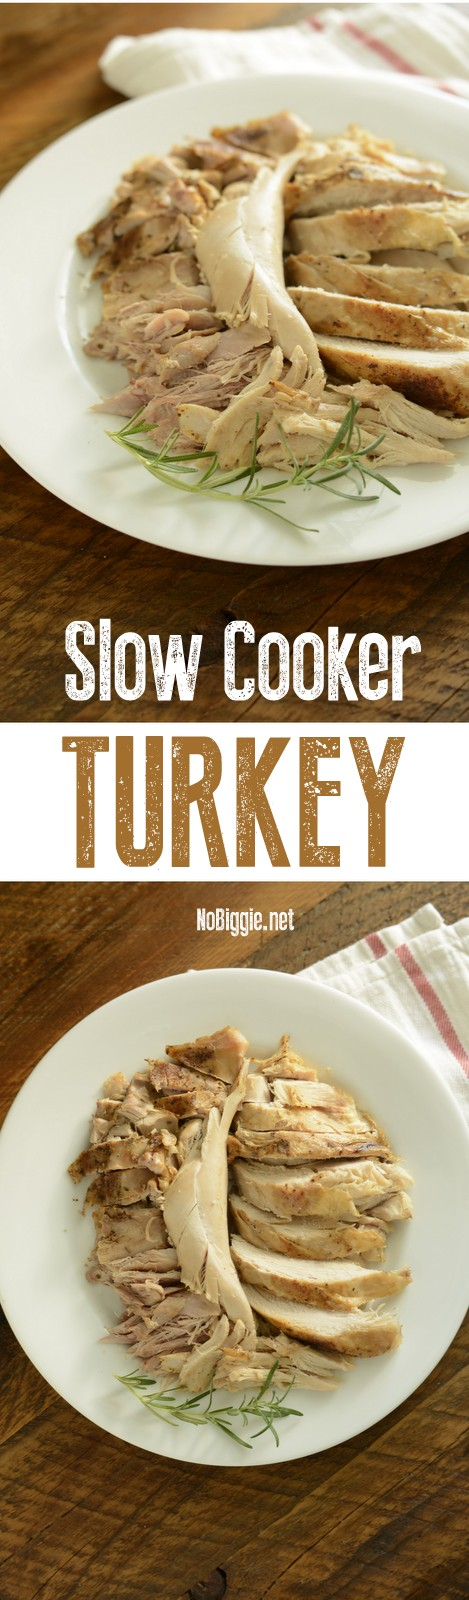 Slow Cooker Turkey - It's so dang good! Perfect for a small crowd! #slowcookerturkey #thanksgiving #crockpotmeals #easymeals #slowcooker #crockpot #turkey #turkeyrecipes